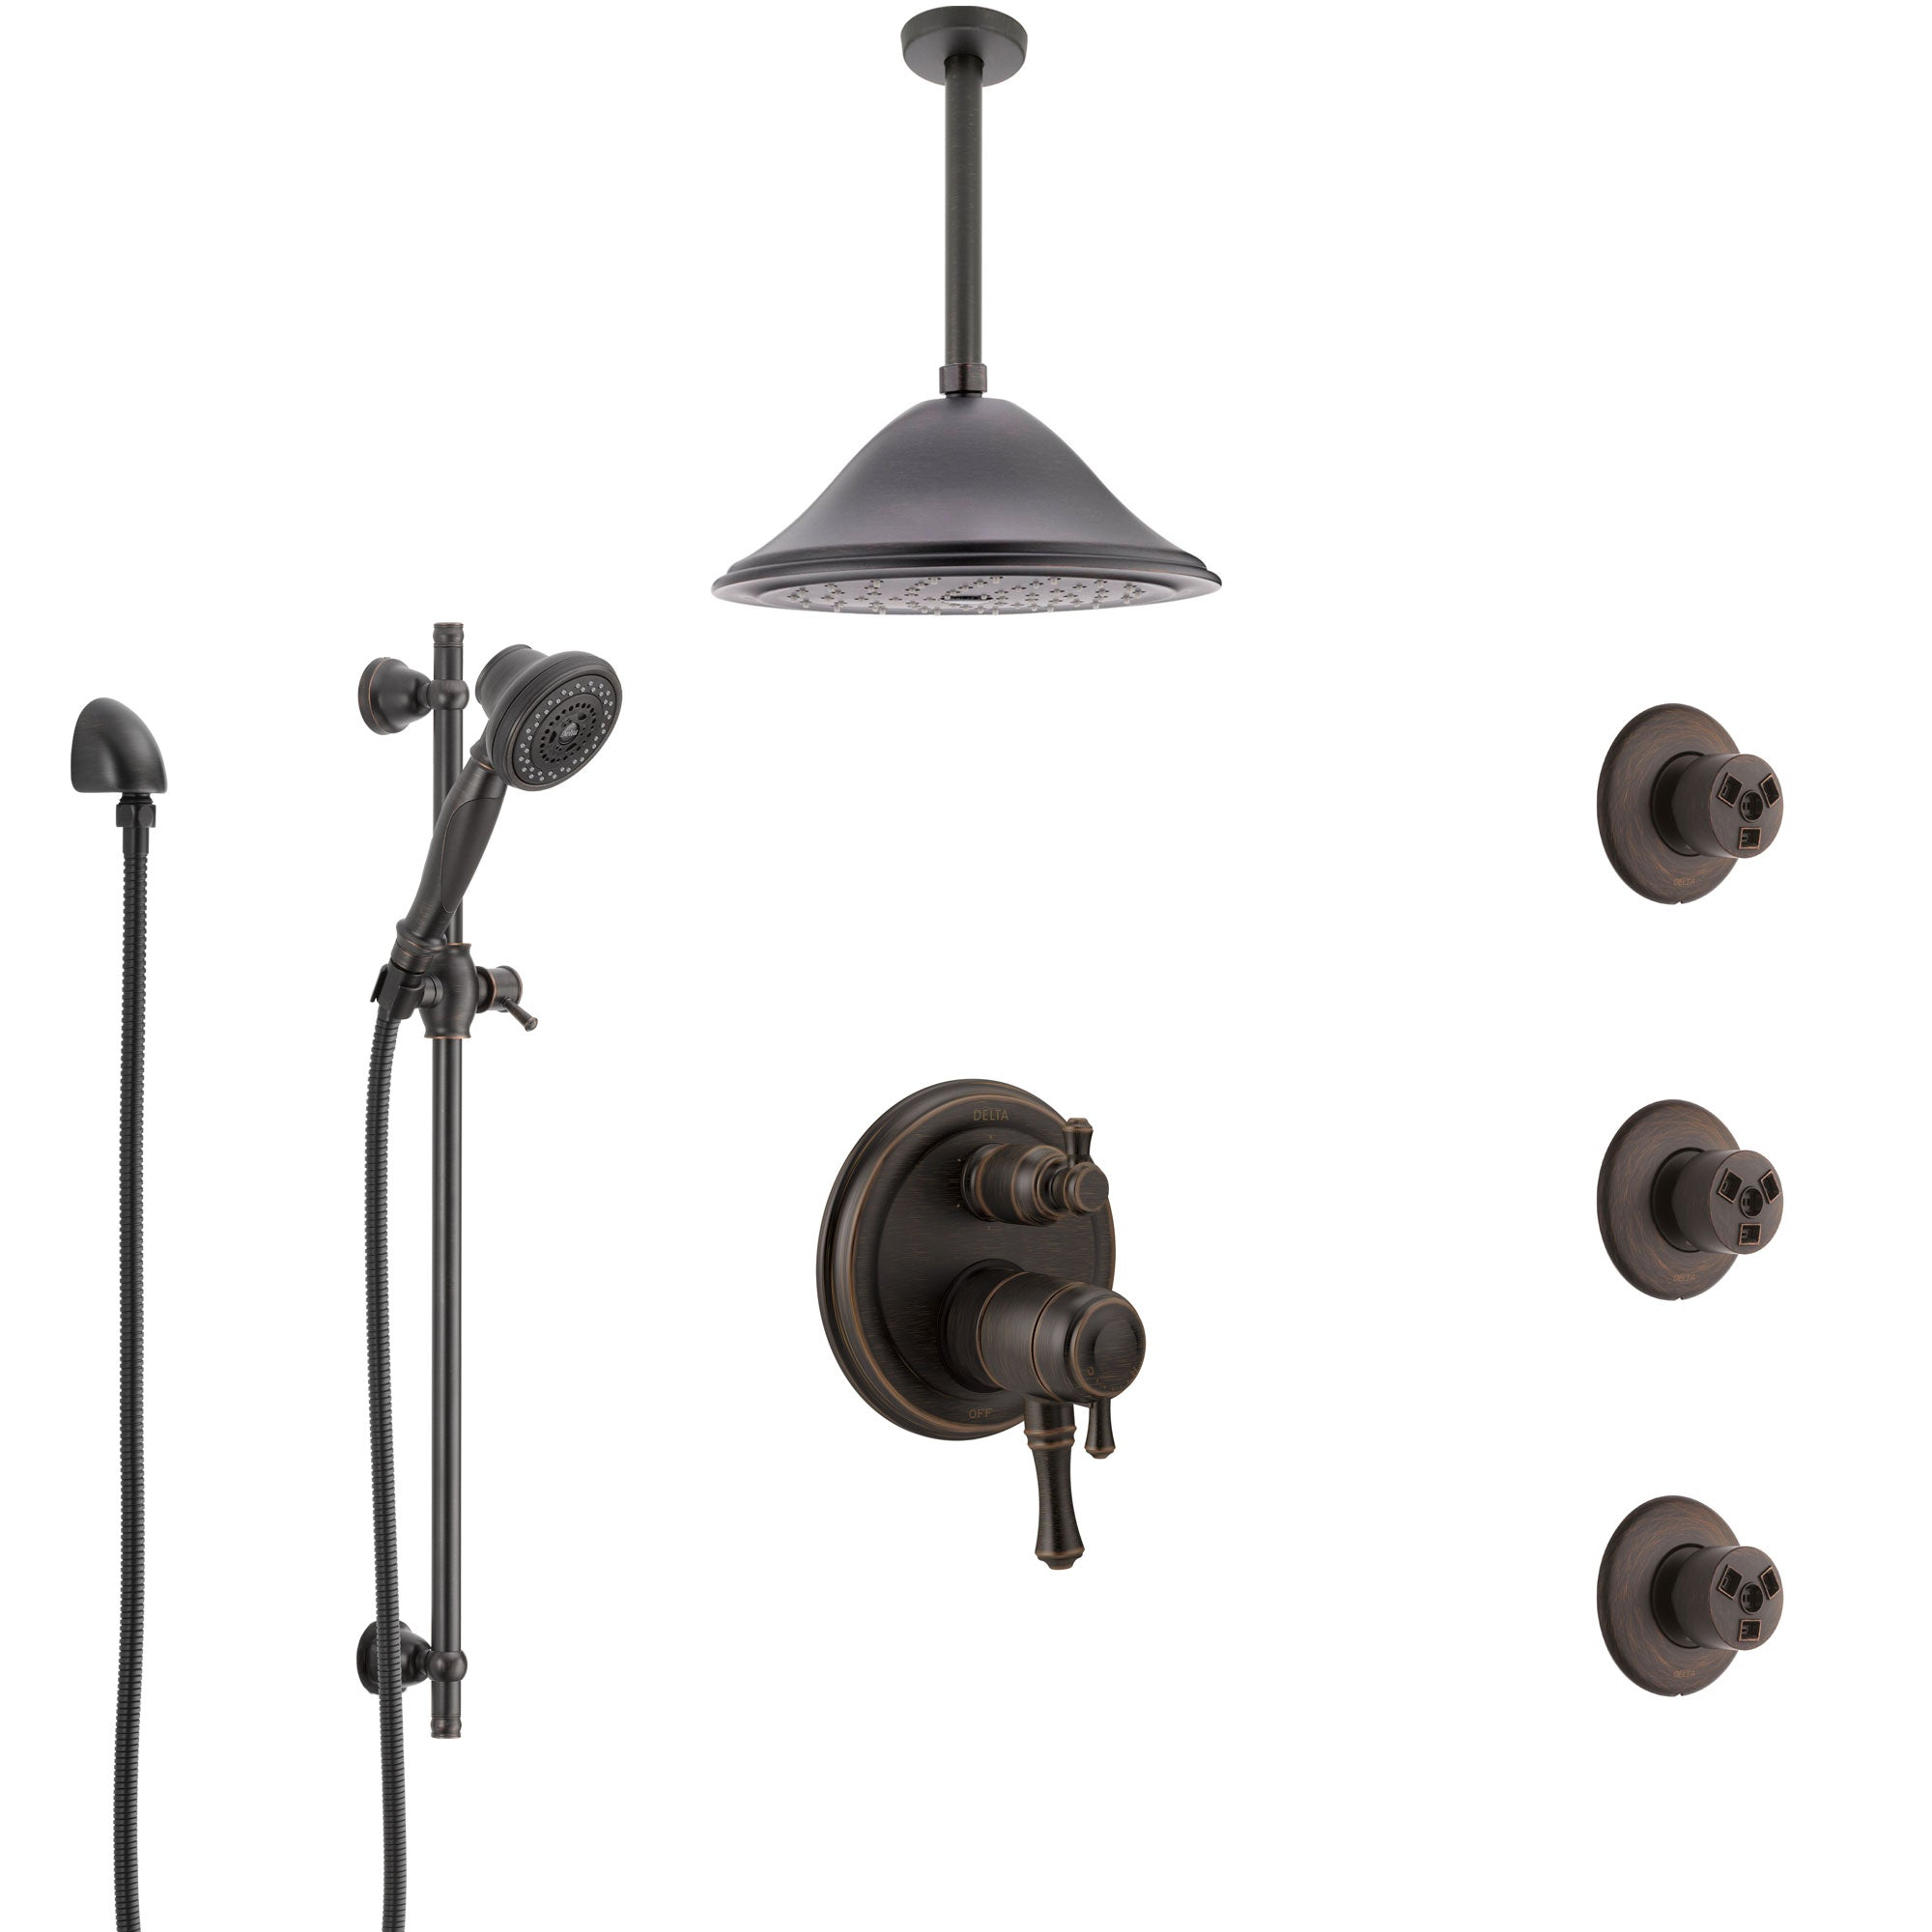 Delta Cassidy Venetian Bronze Shower System with Dual Control Handle, Integrated Diverter, Ceiling Showerhead, 3 Body Sprays, Hand Spray SS27997RB11